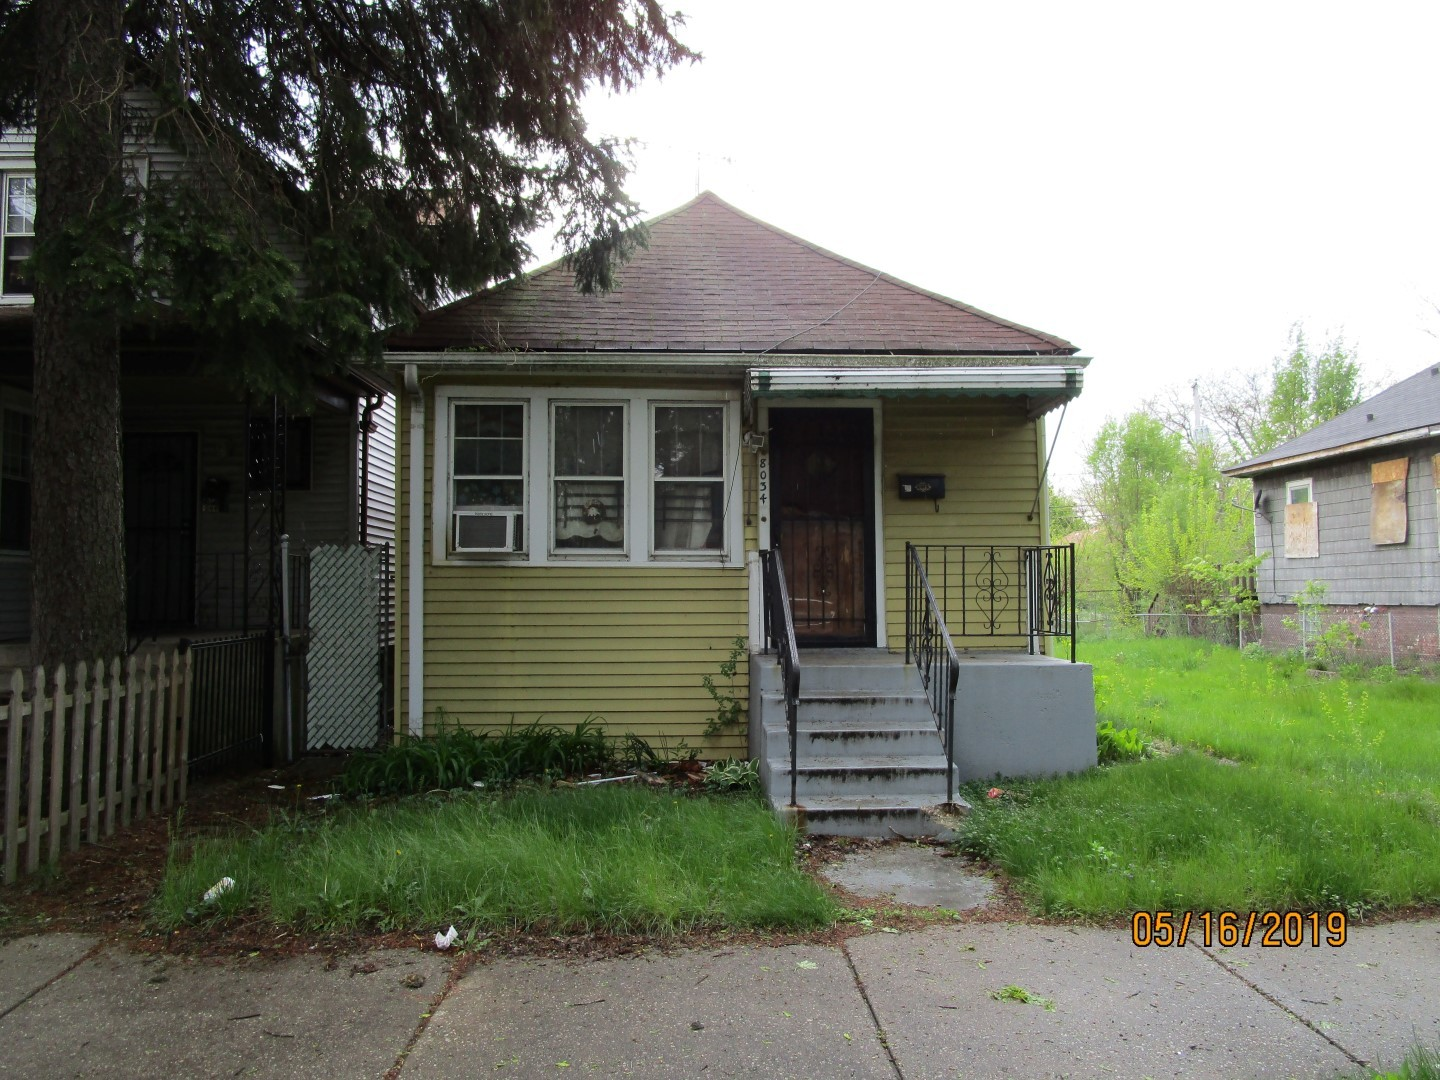 SINGLE FAMILY HOME SOLD AS-IS AND READY FOR A NEW FAMILY.   NOT BANK OWNED AND NOT A SHORT SALE, OWNERS ARE LOCAL AND MOTIVATED.  THIS HOME IS BEING SOLD AS-IS, SO PLEASE INSPECT PRIOR TO SUBMITTING AN OFFER.  PLEASE NOTE: 0% TAX PRORATIONS ARE OFFERED, THE SELLER WILL PAY CURRENT AND ALL PRIOR TAX BUT 0% CREDIT FOR FUTURE BILLS.  SPECIAL WARRANTY DEED AT CLOSING. NO SURVEY.  FOR FASTER RESPONSE PLEASE USE SELLERS CONTRACT, ADDENDUM AND DISCLOSURES UNDER DOCUMENTS